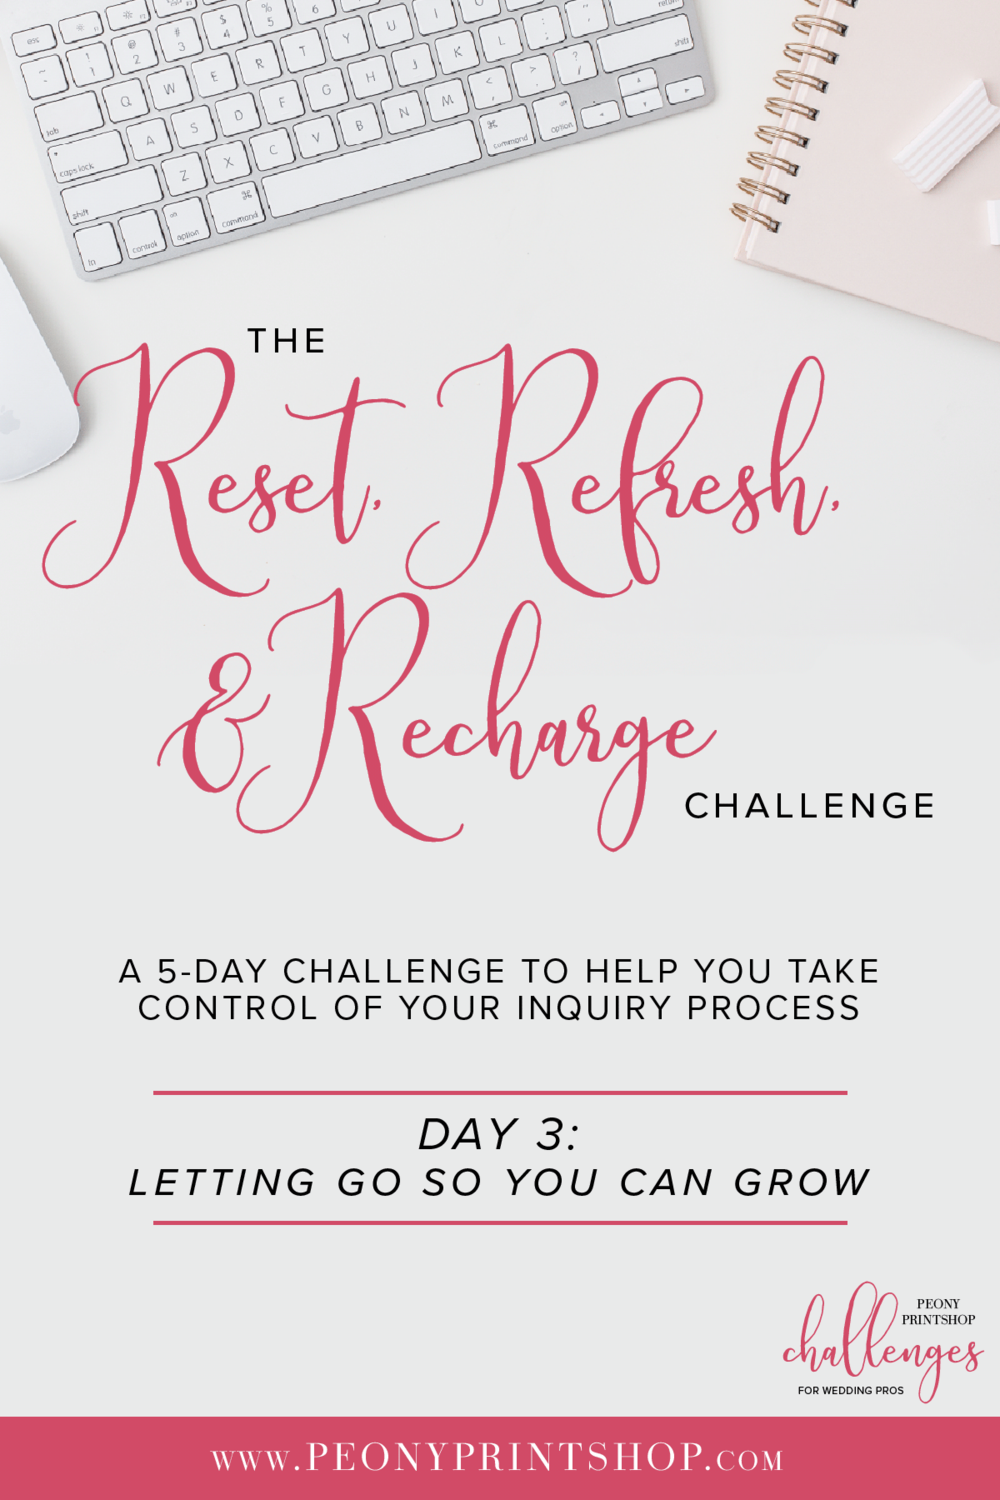 Reset, Refresh, & Recharge Challenge at PeonyPrinsthop.com | Day 3: Letting Go So You Can Grow